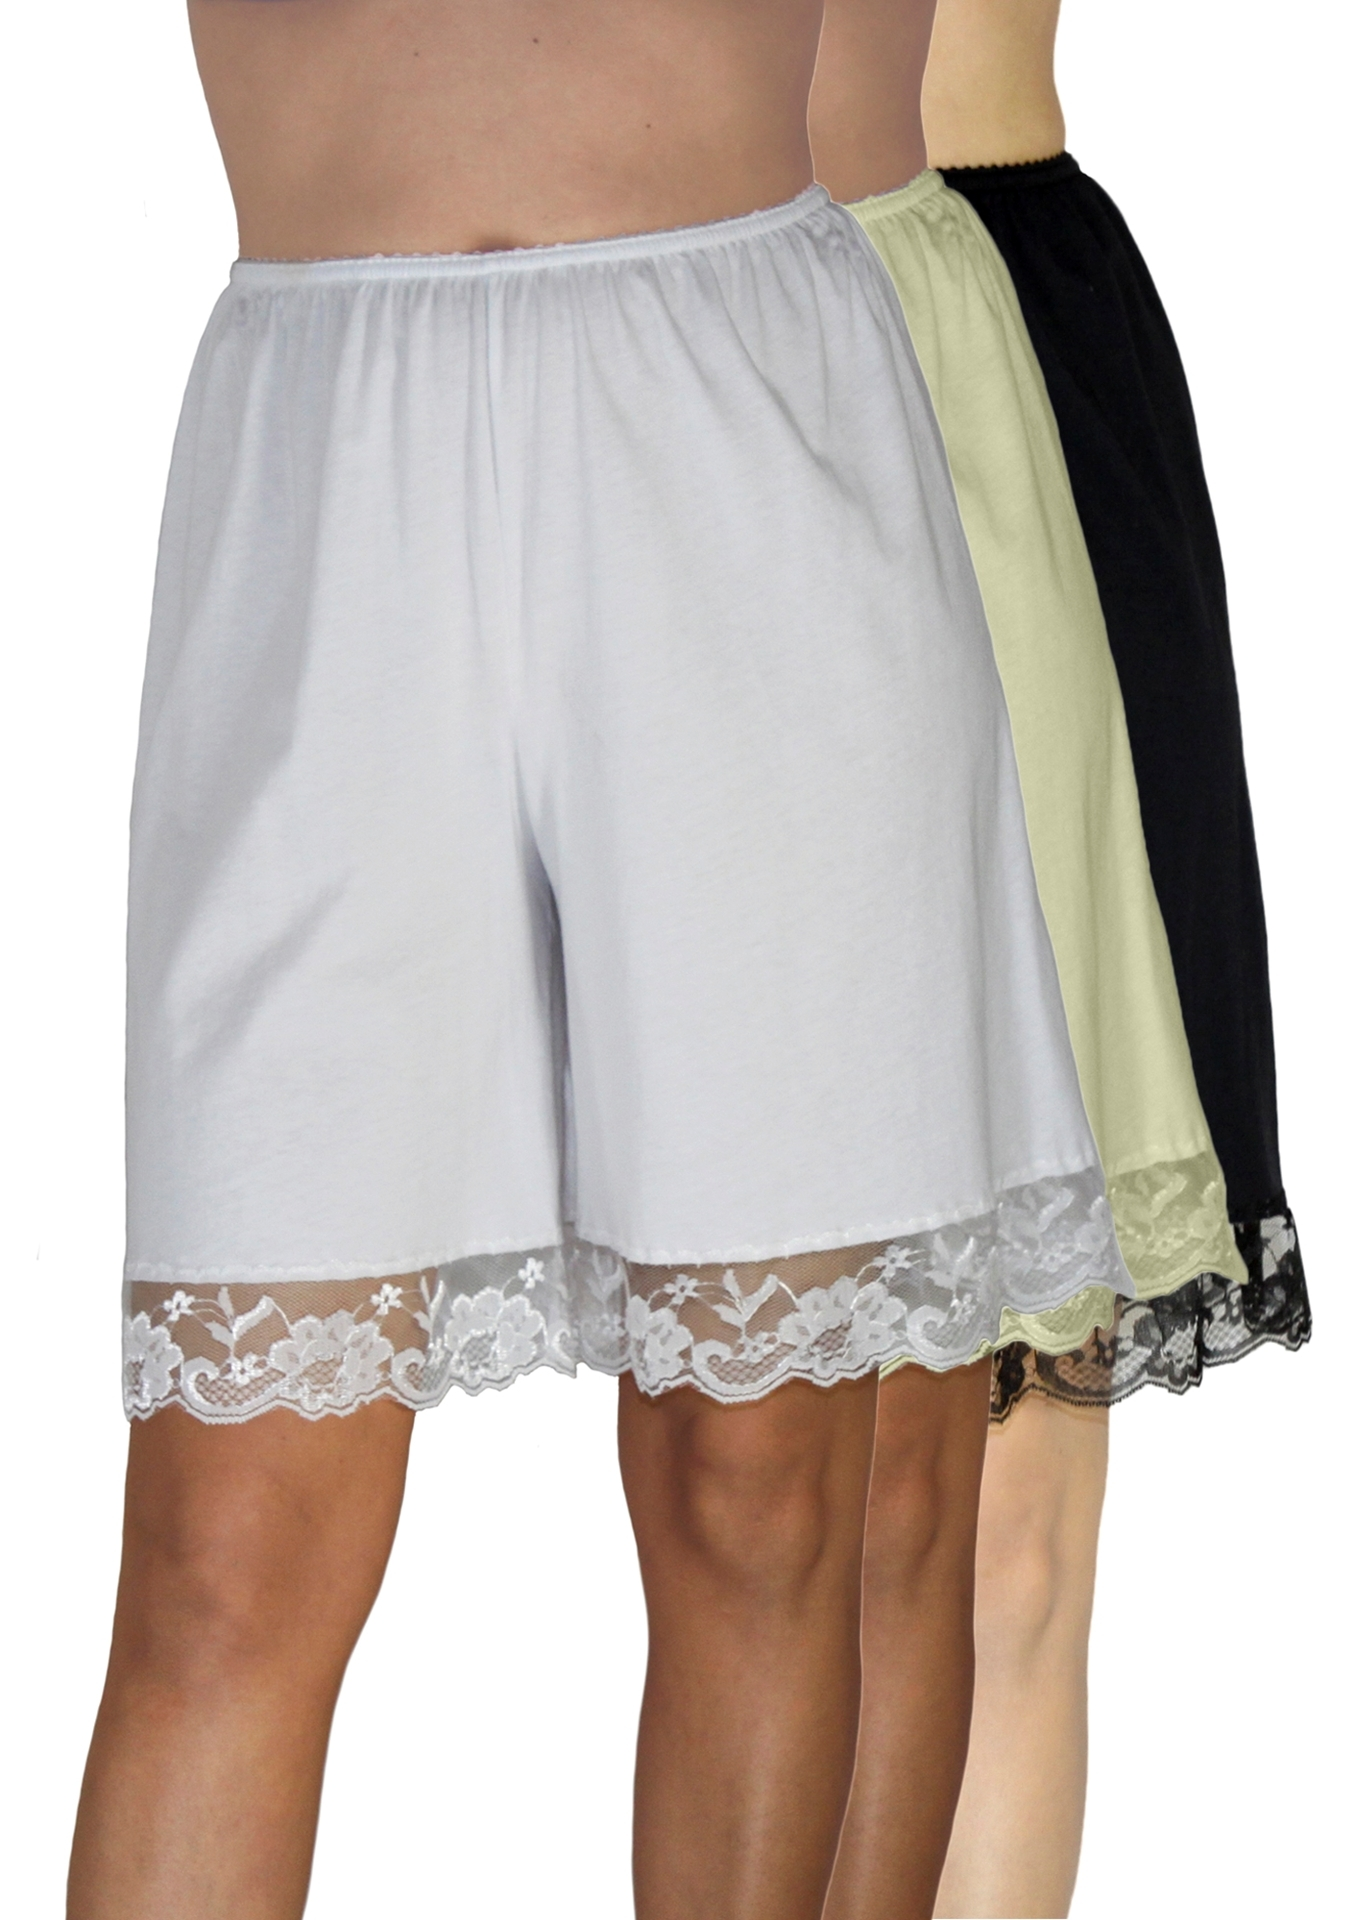 Picture of Pettipants Cotton Knit Culotte Slip Bloomers Split Skirt 9-inch Inseam 3-Pack